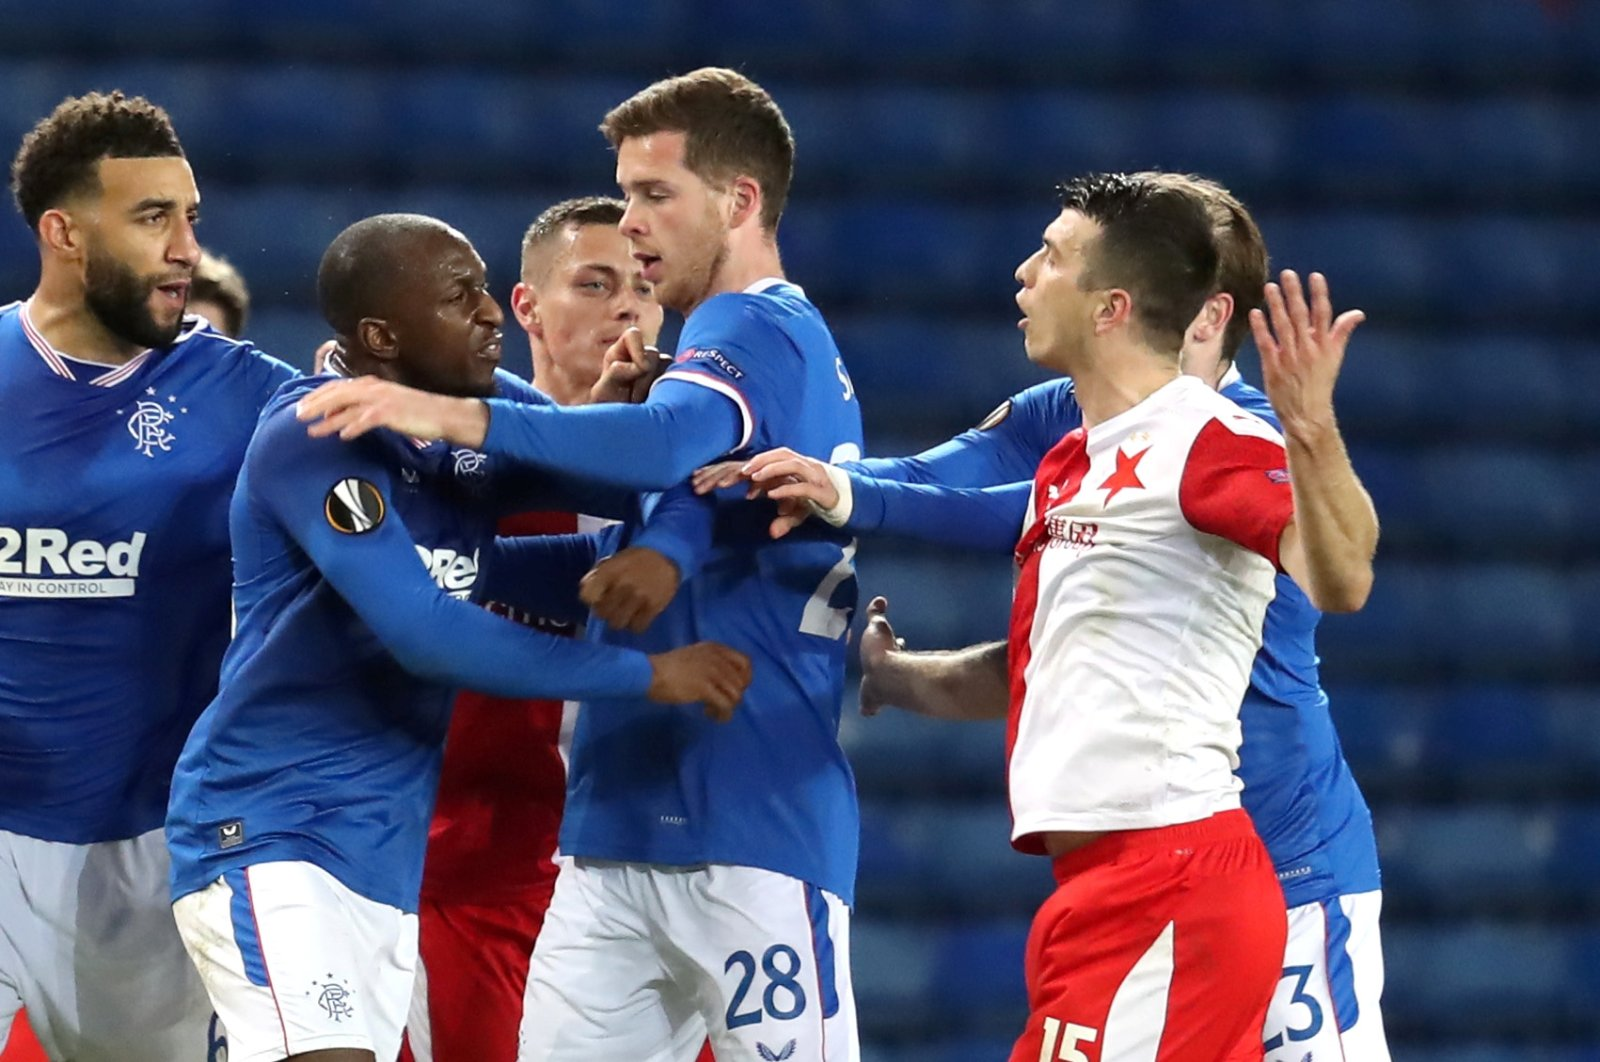 Slavia Prague's Ondrej Kudela (R) clashes with Rangers' Glen Kamara (2nd L) during a Europa League round of 16, second leg match at Ibrox Stadium, Glasgow, Scotland, March 18, 2021. (Reuters Photo)